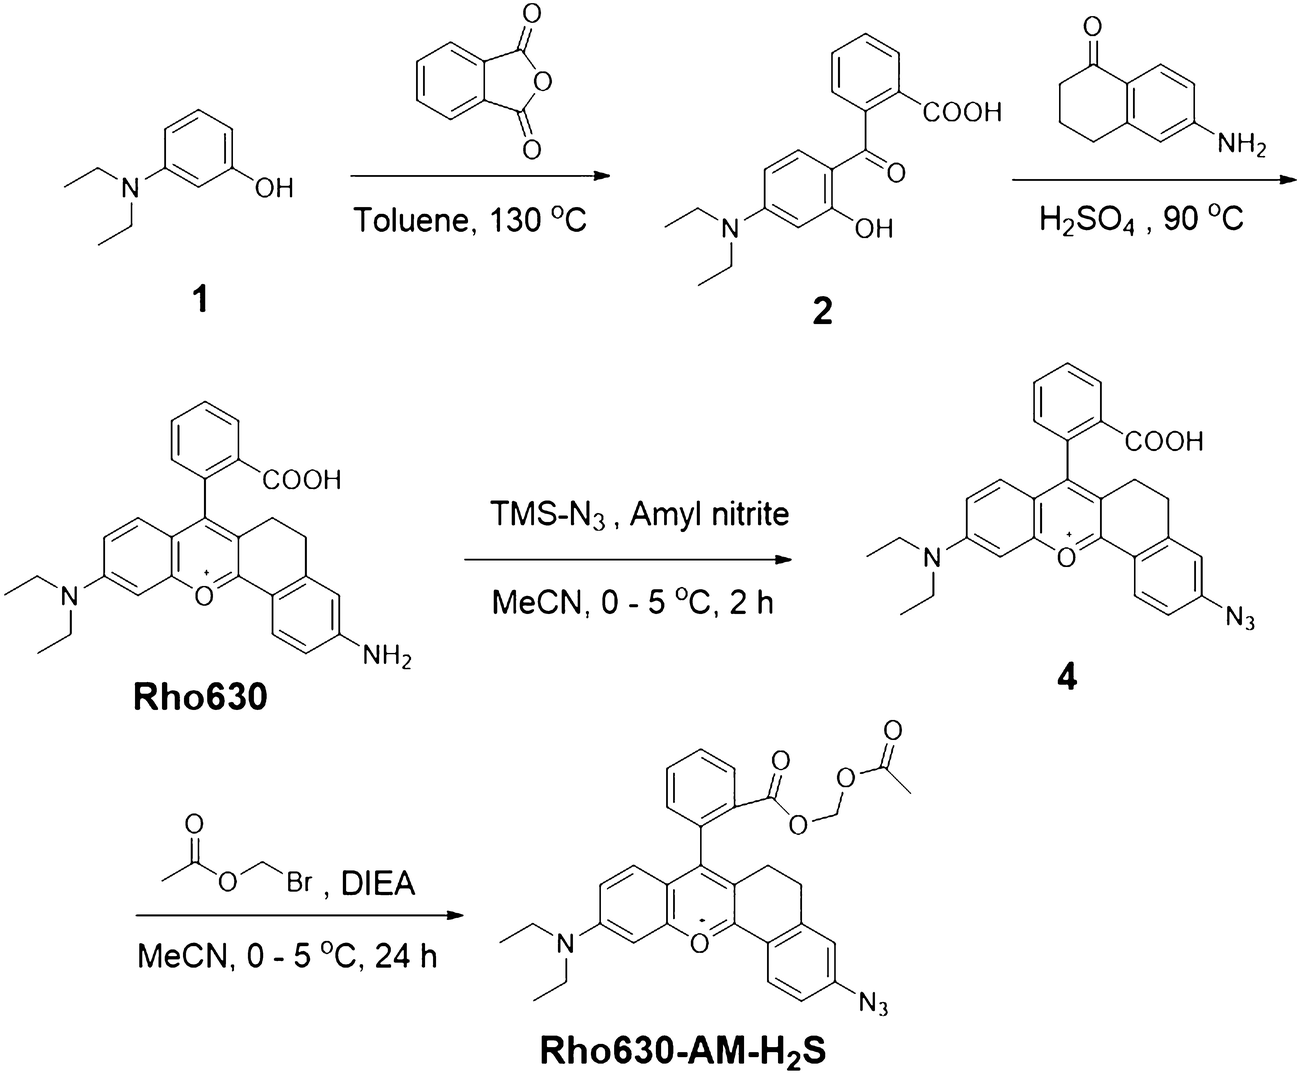 Construction of a novel cell-trappable fluorescent probe for